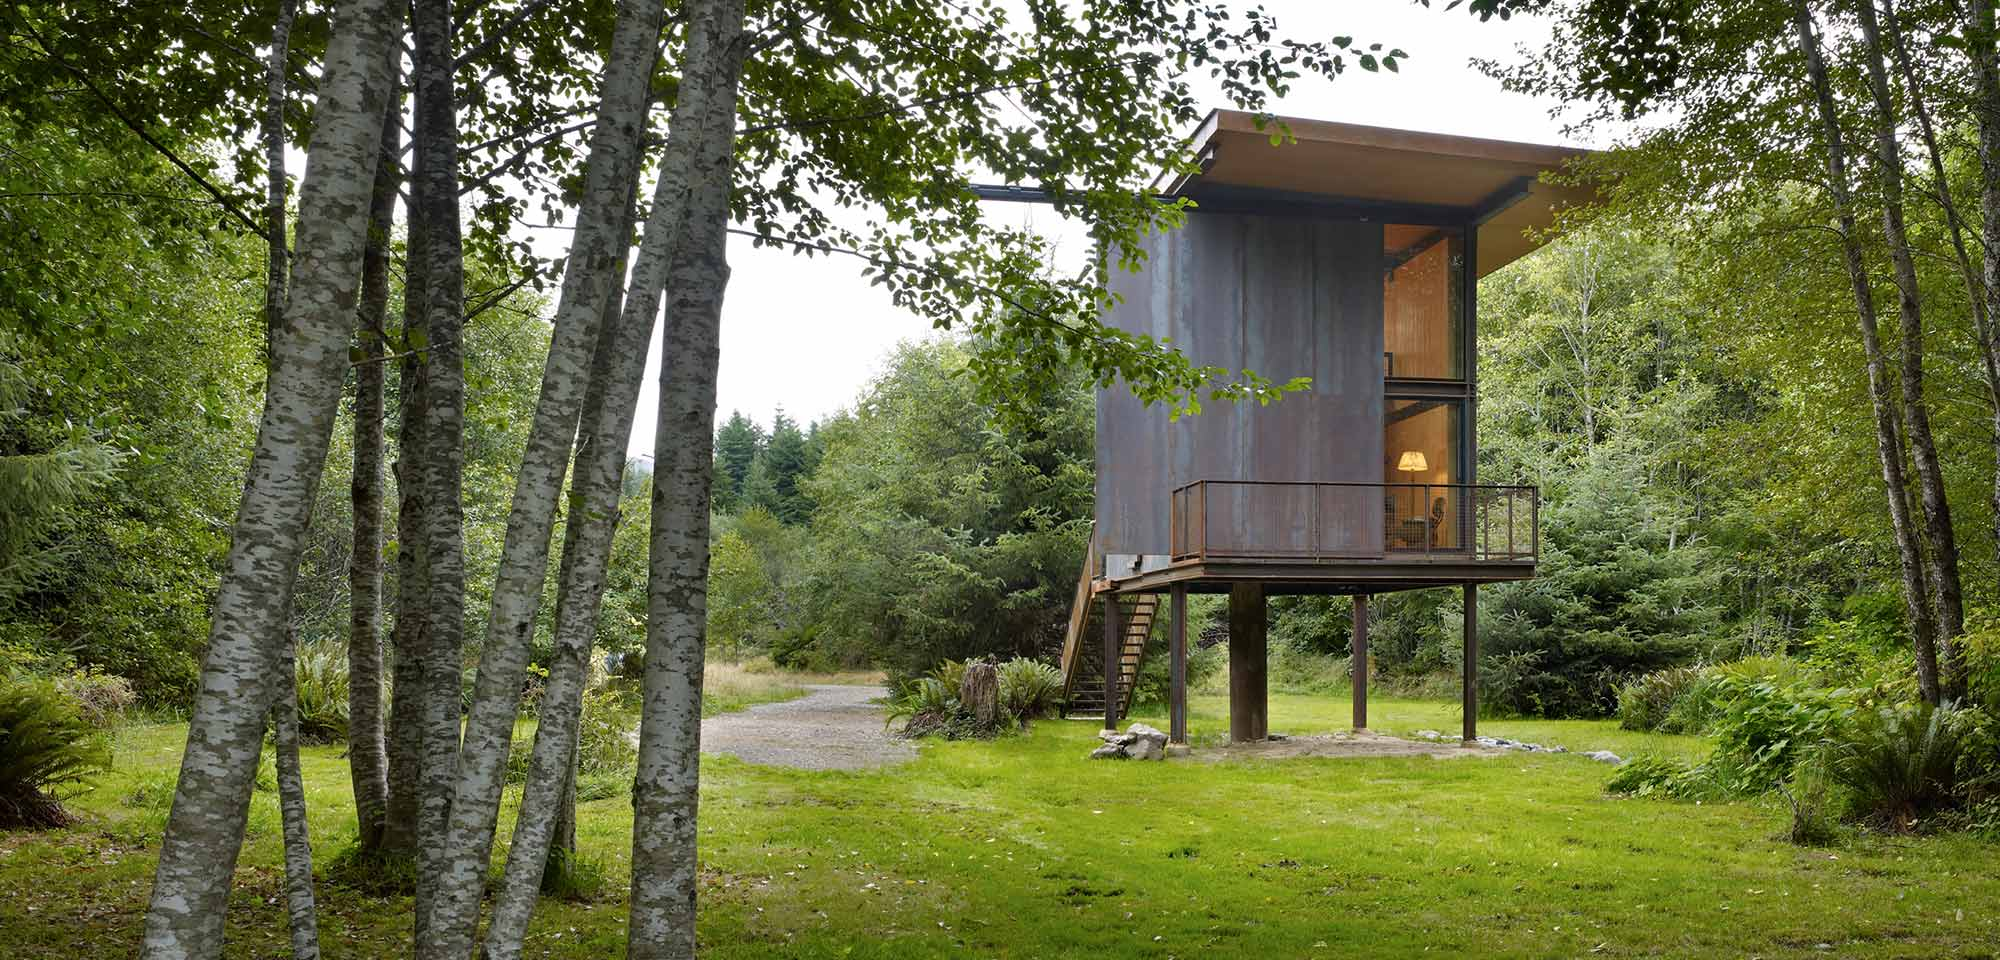 Sol Duc Cabin designed by Tom Kundig